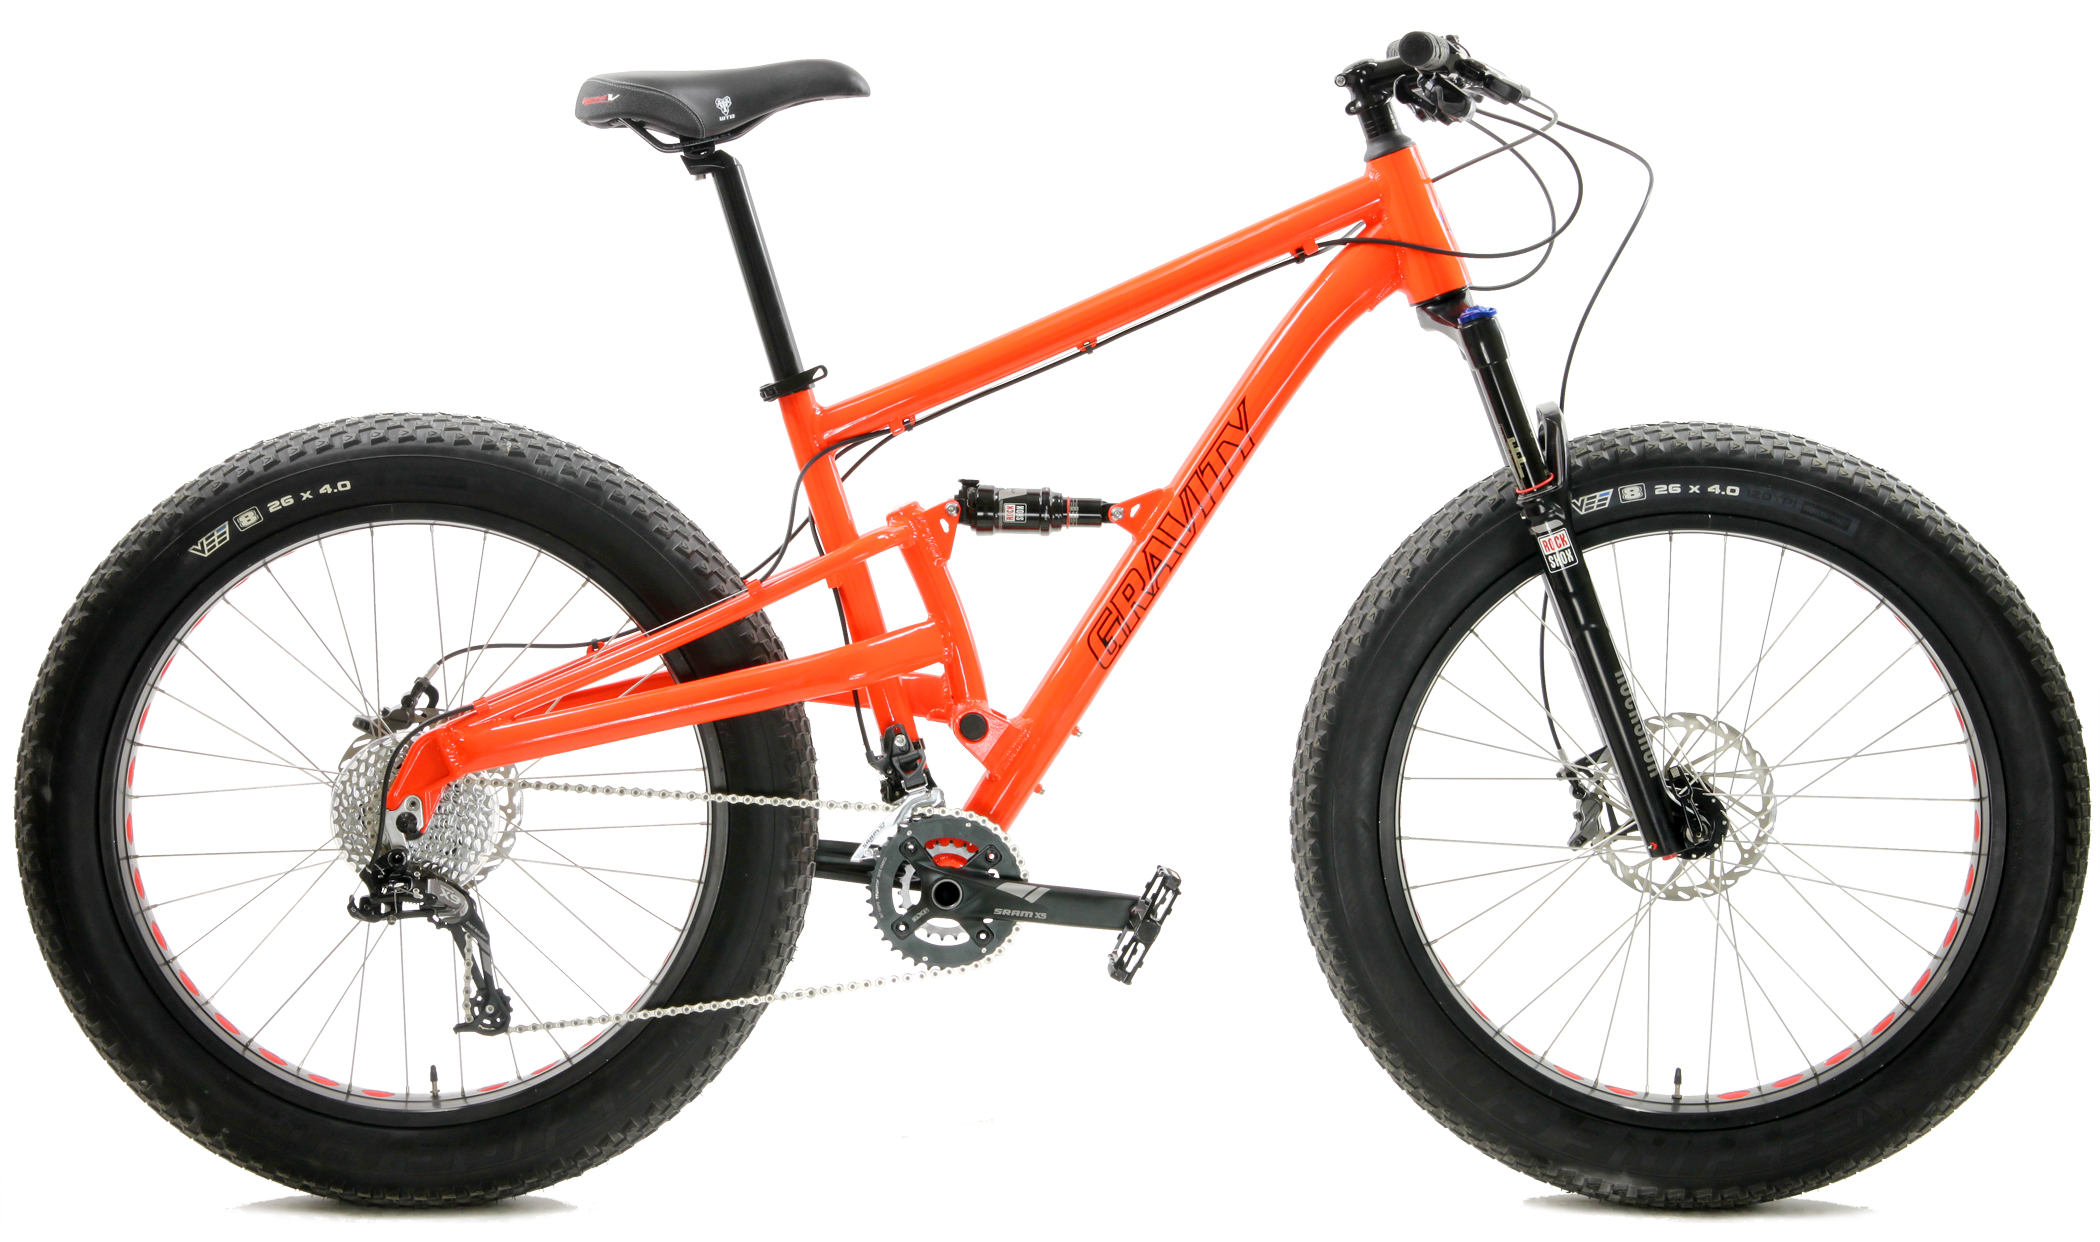 Bikes Gravity Sniper Sram X9 / X7 20 Speed Dual Suspension Fat Bike Image